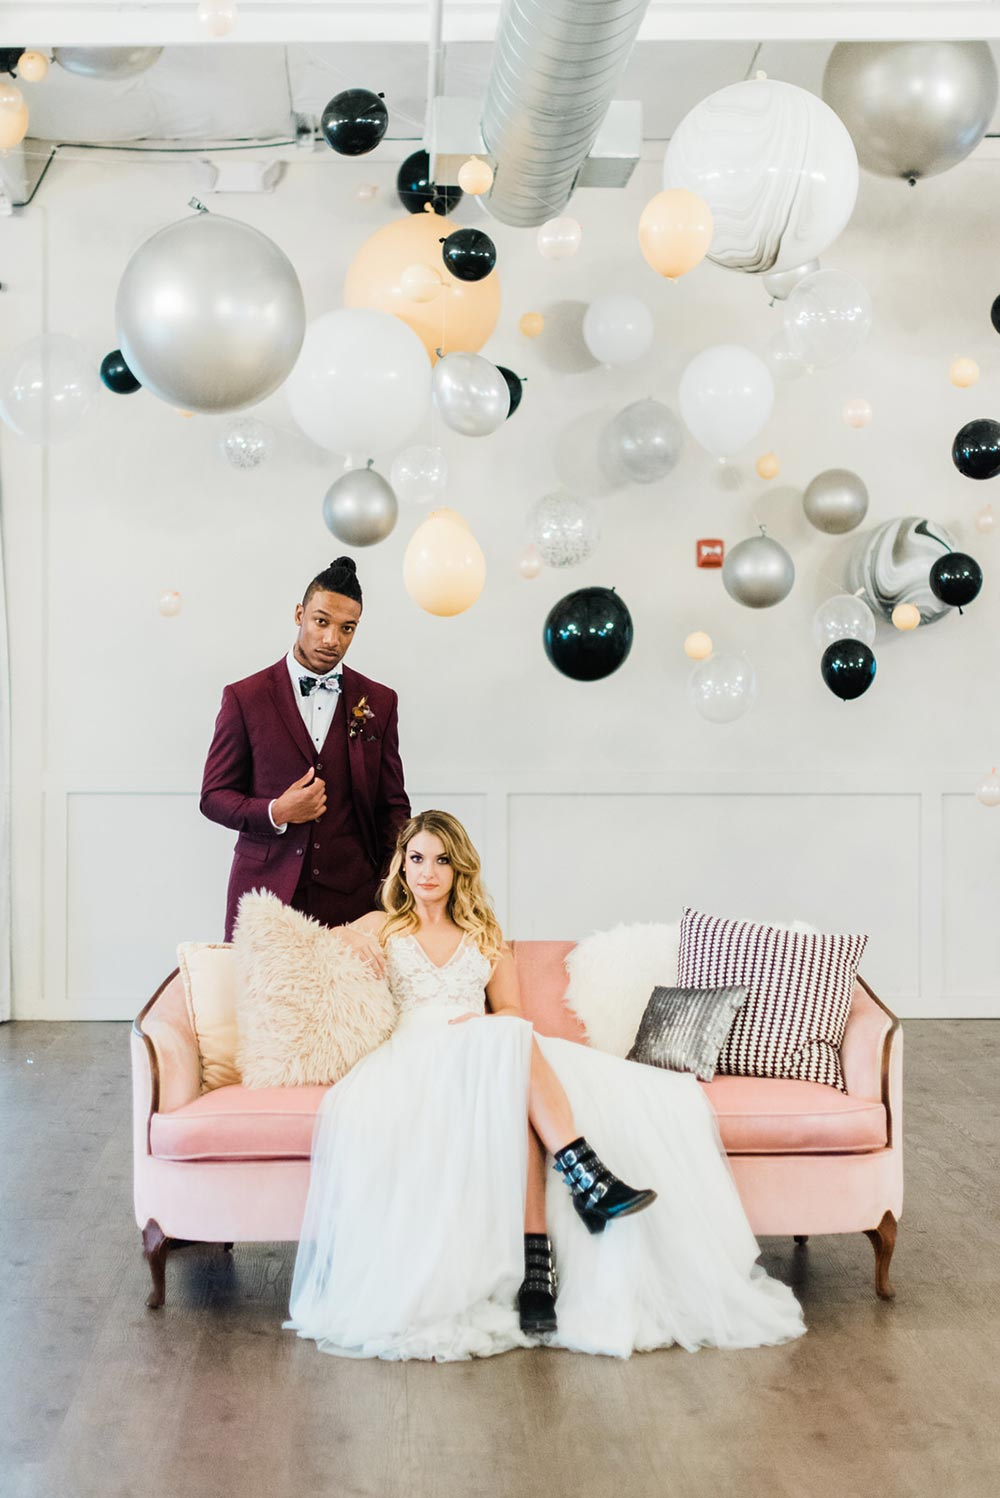 balloon ceiling wedding backdrop bride and groom with pink sofa